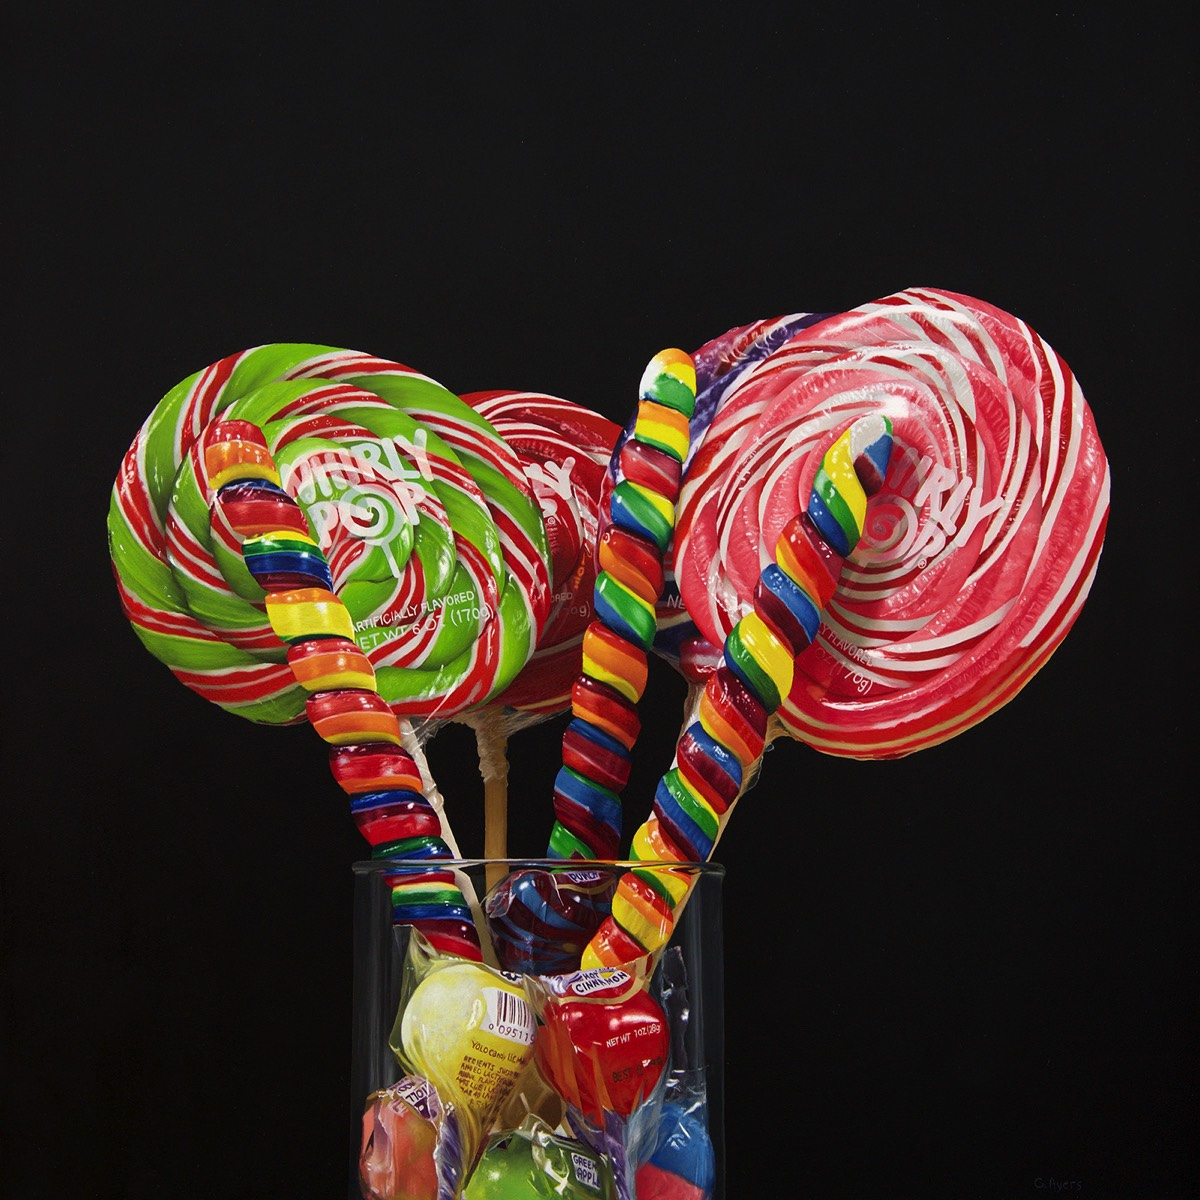 Whirly Pops - 16x16 - SOLD